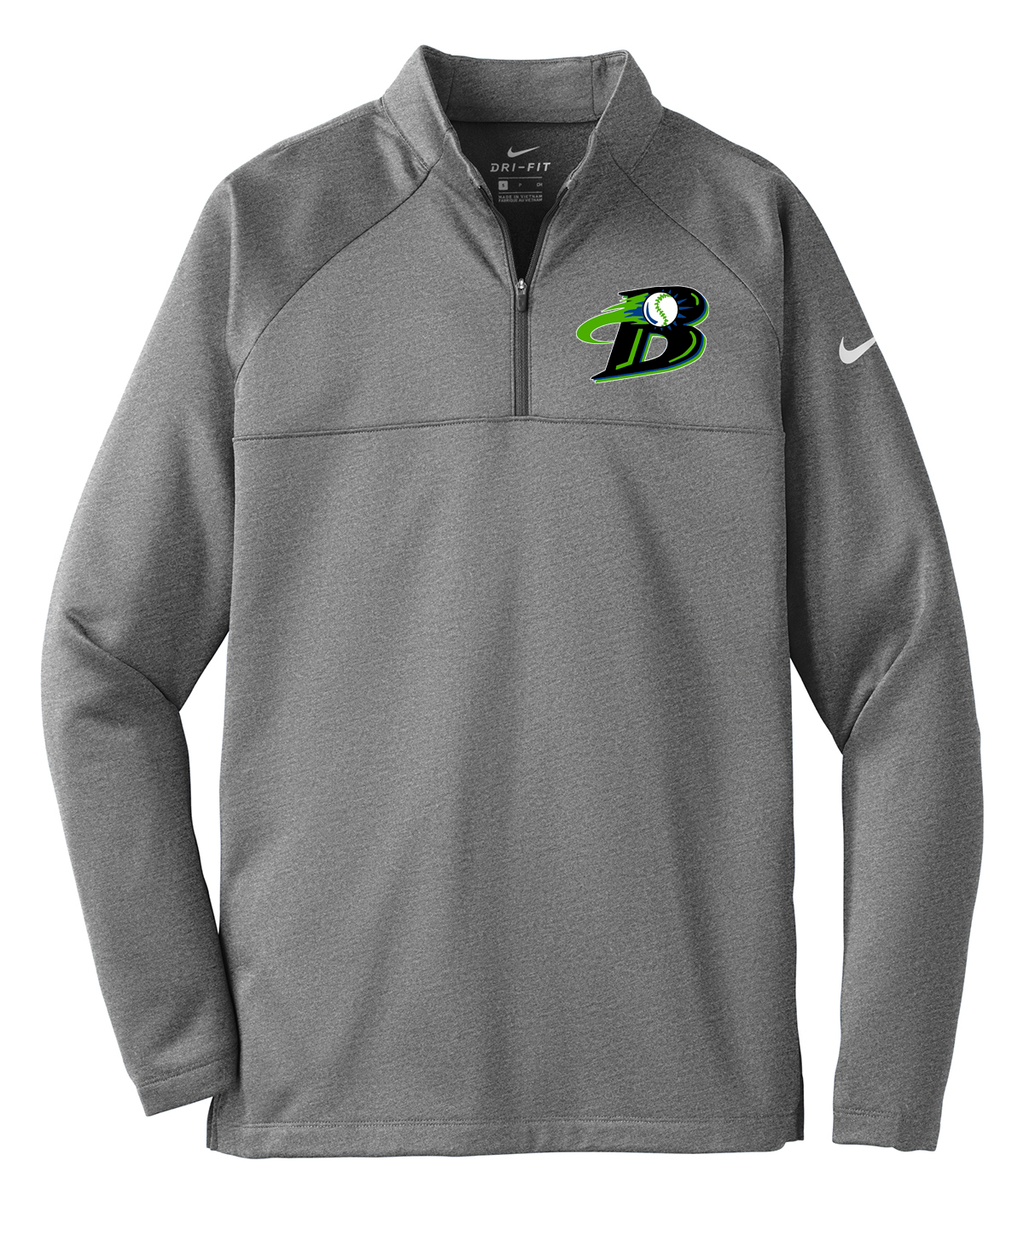 Michigan Blast Elite Baseball Nike 1/4 Zip Fleece